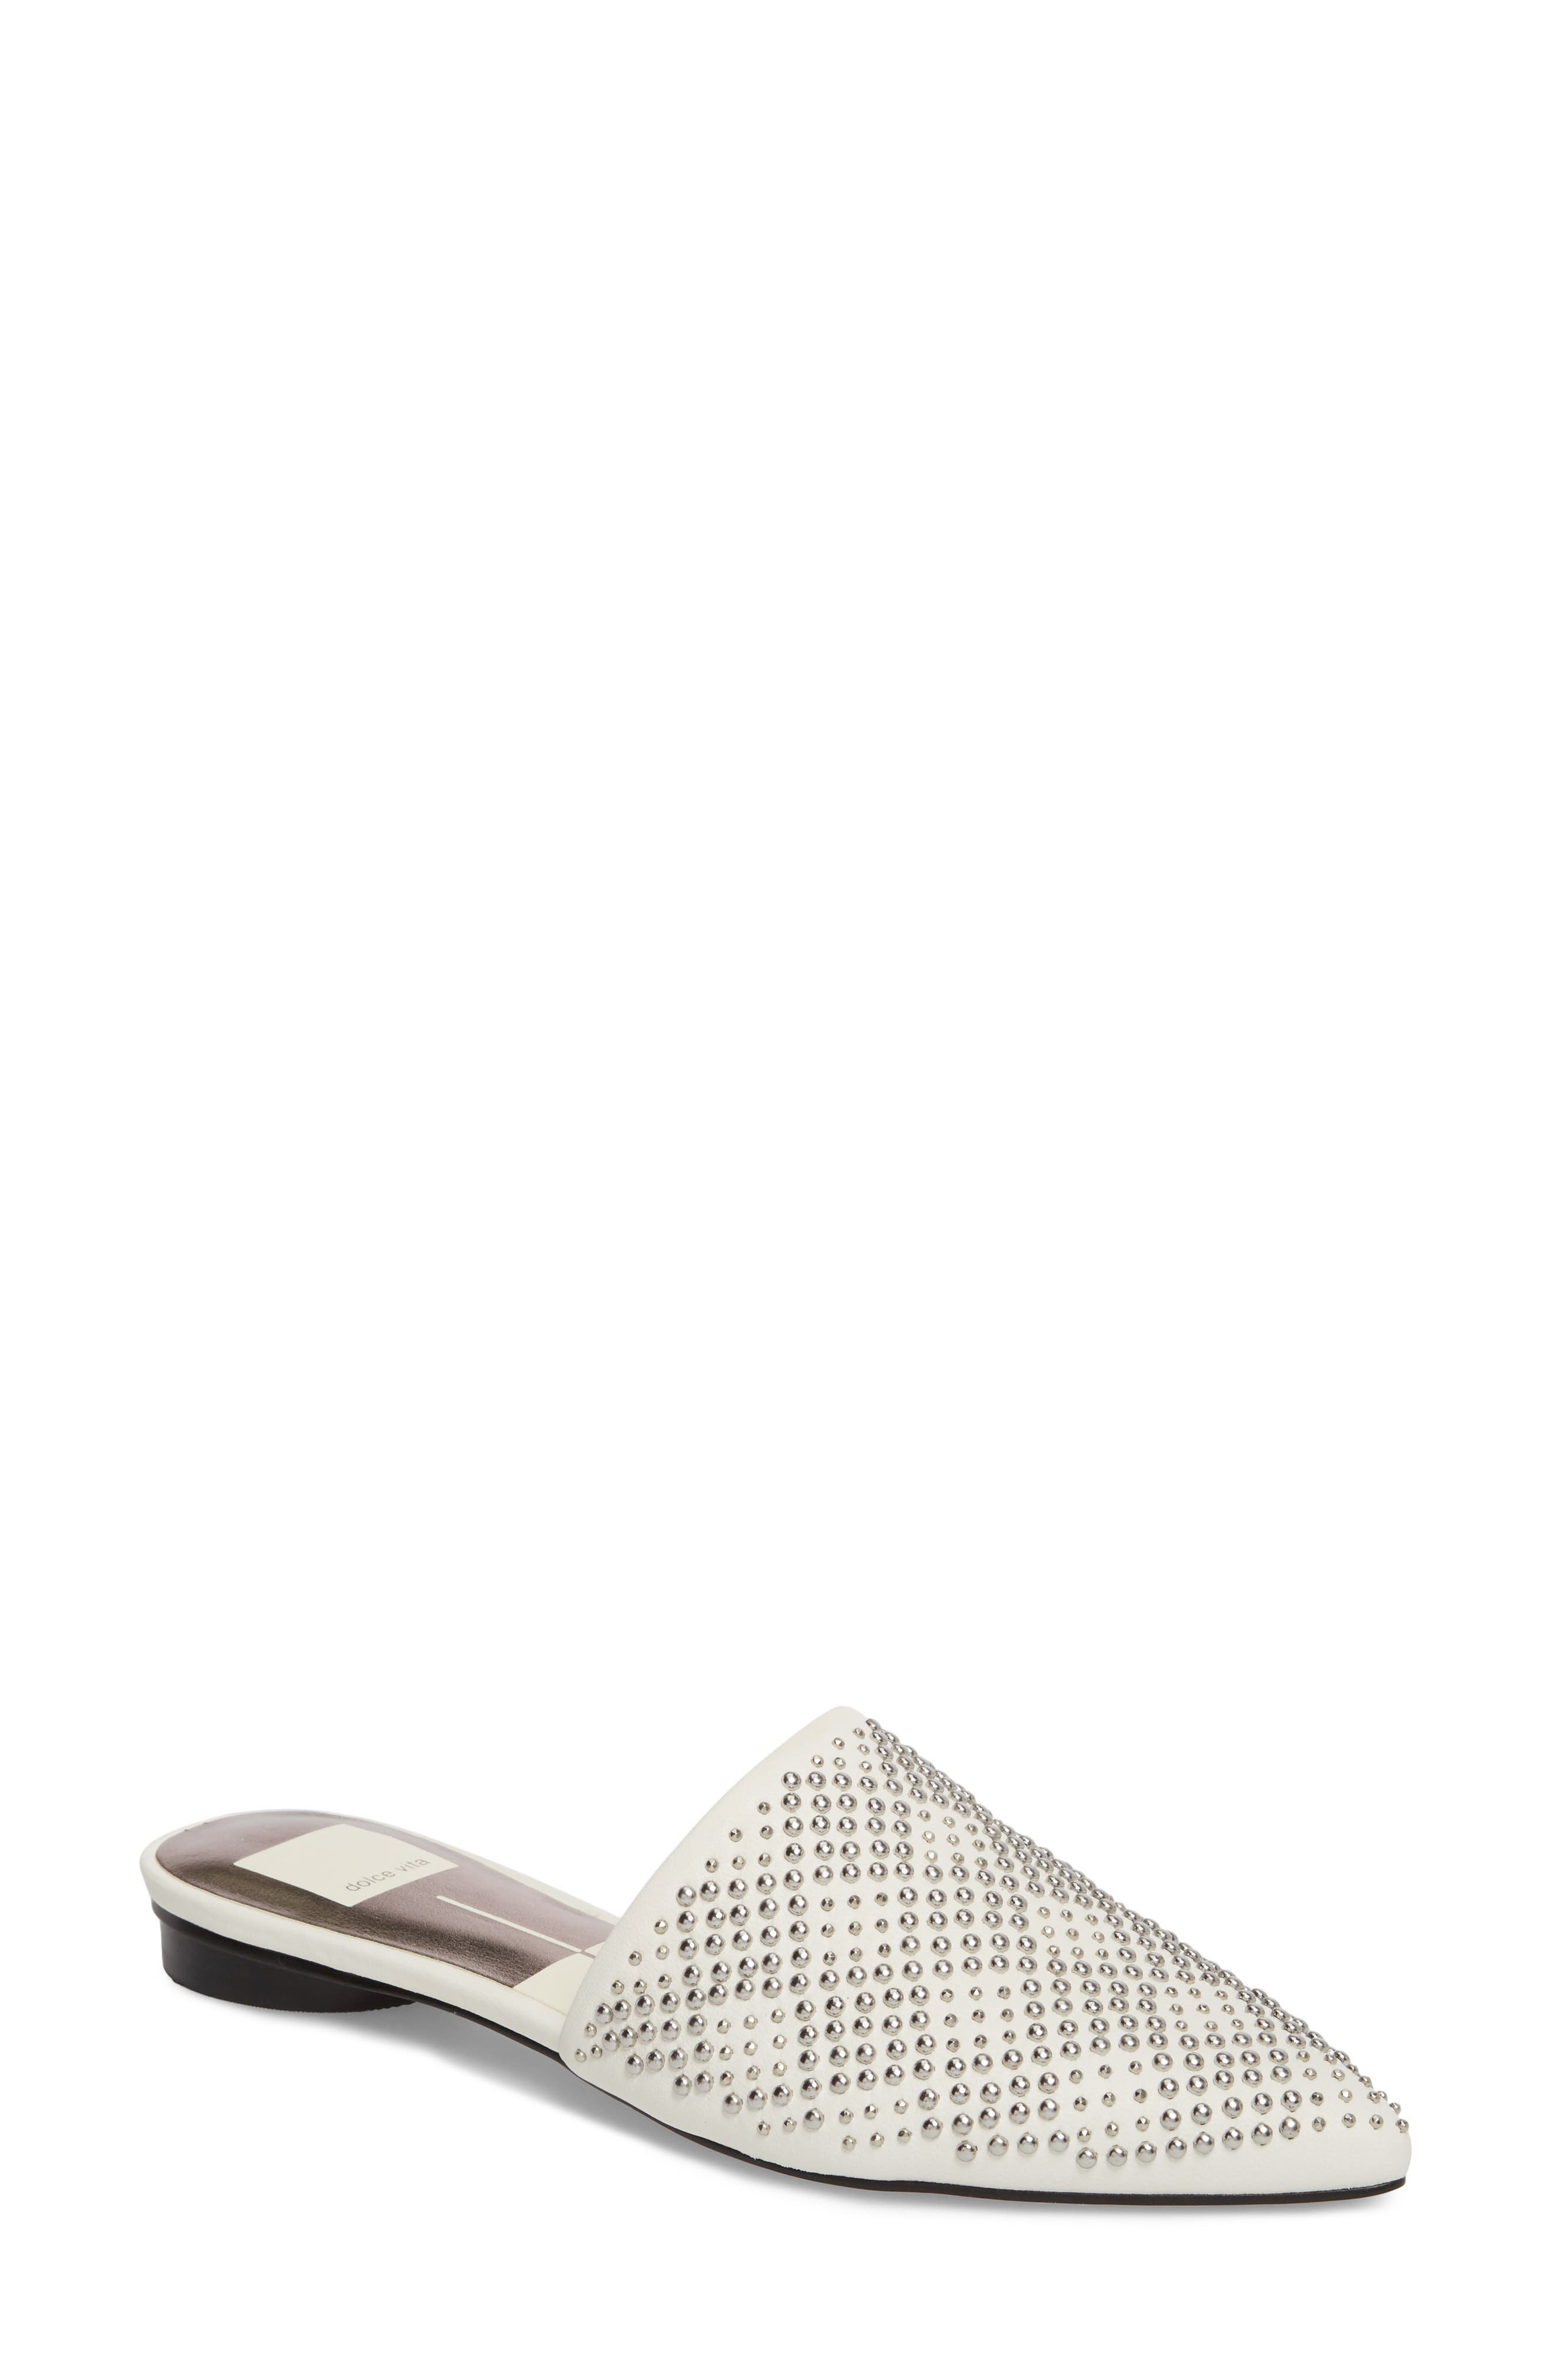 Elvah Studded Mule,                         Main,                         color, OFF WHITE LEATHER STUDS